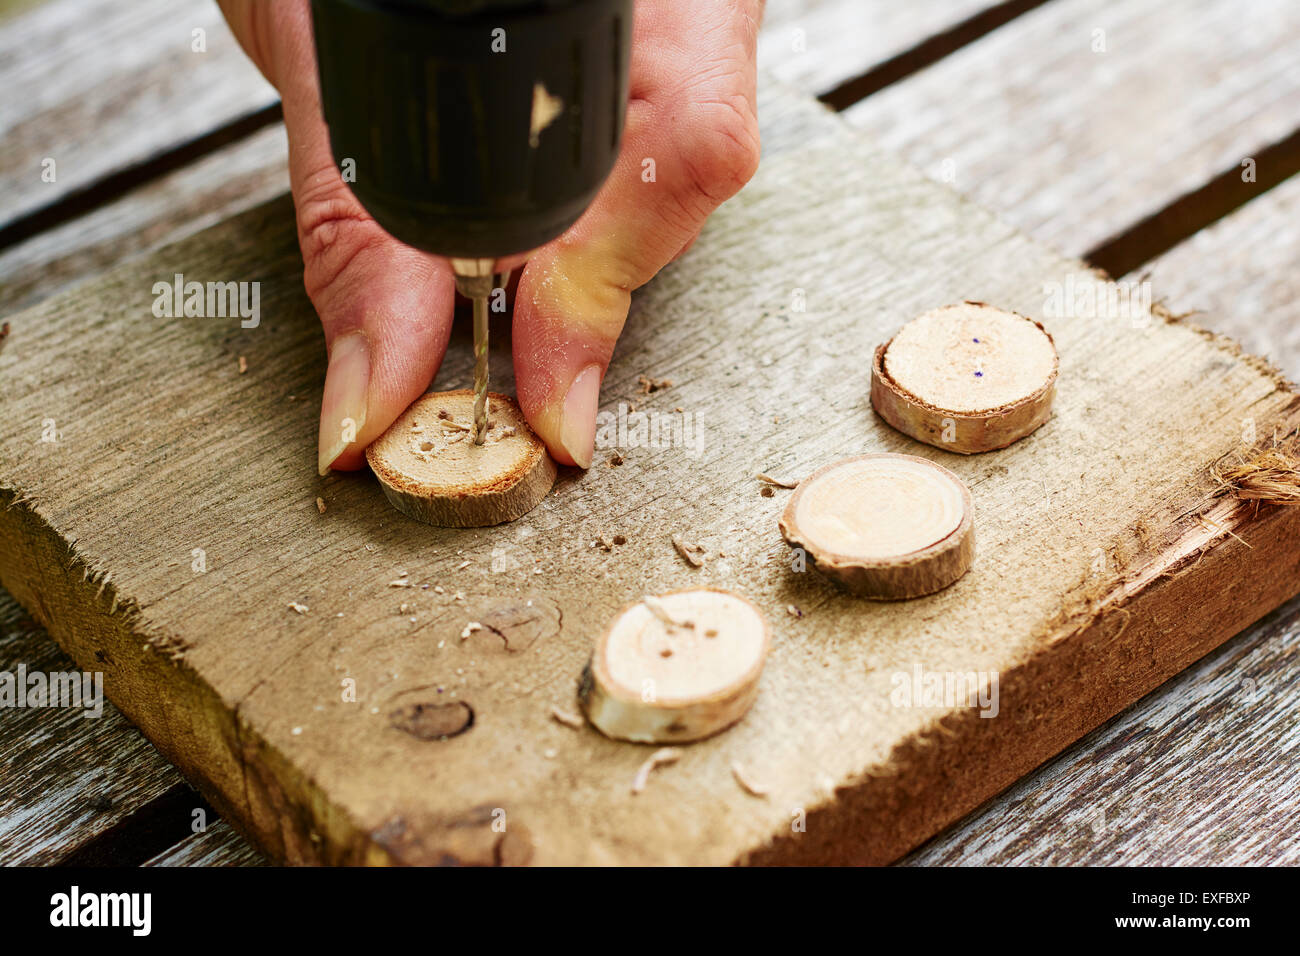 Man drilling holes into wooden buttons. - Stock Image